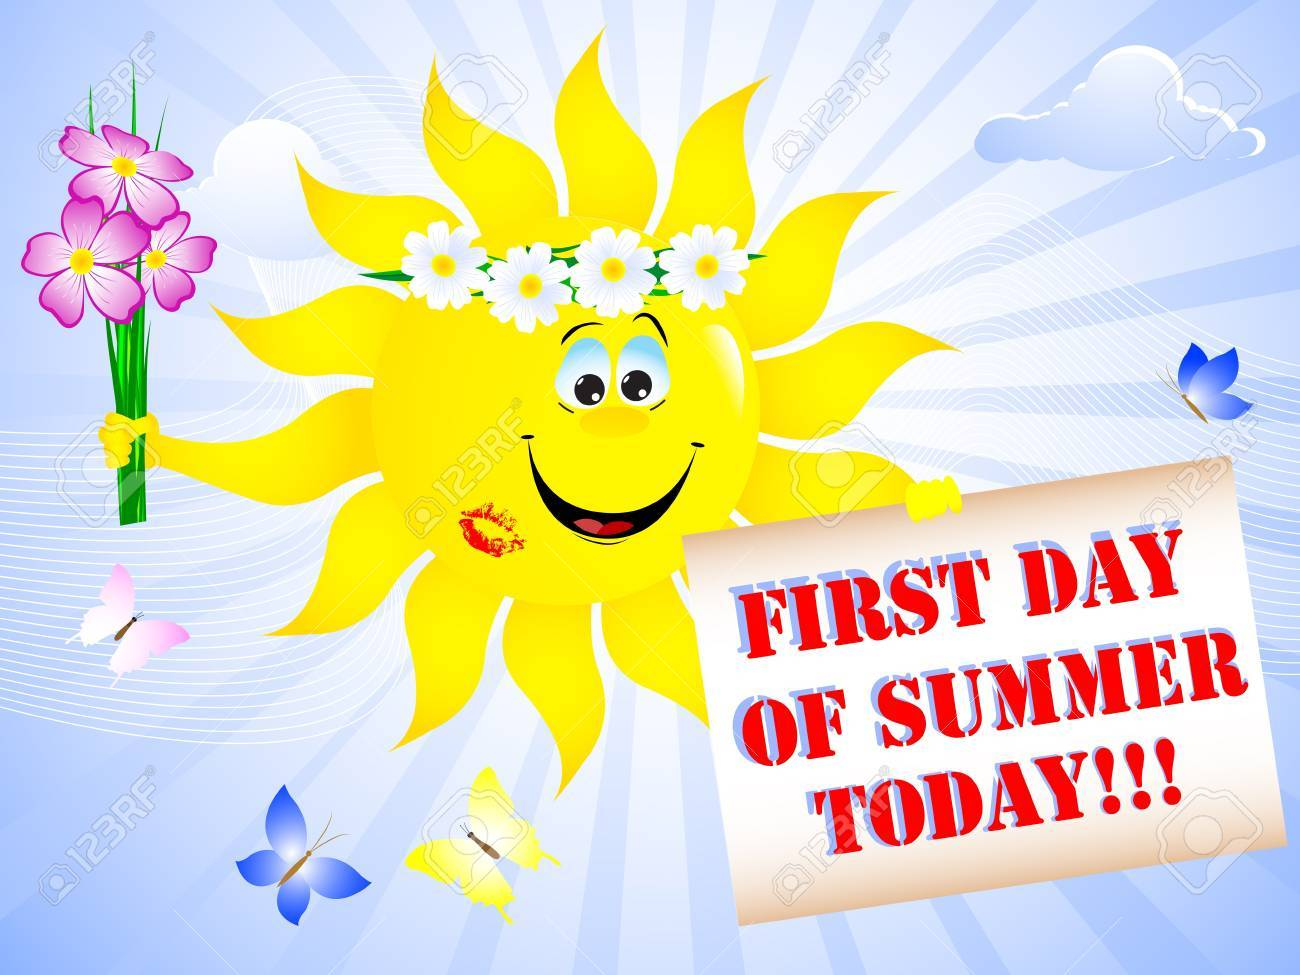 First day of summer clipart images clipart freeuse download 1st day of summer clipart 5 » Clipart Portal clipart freeuse download